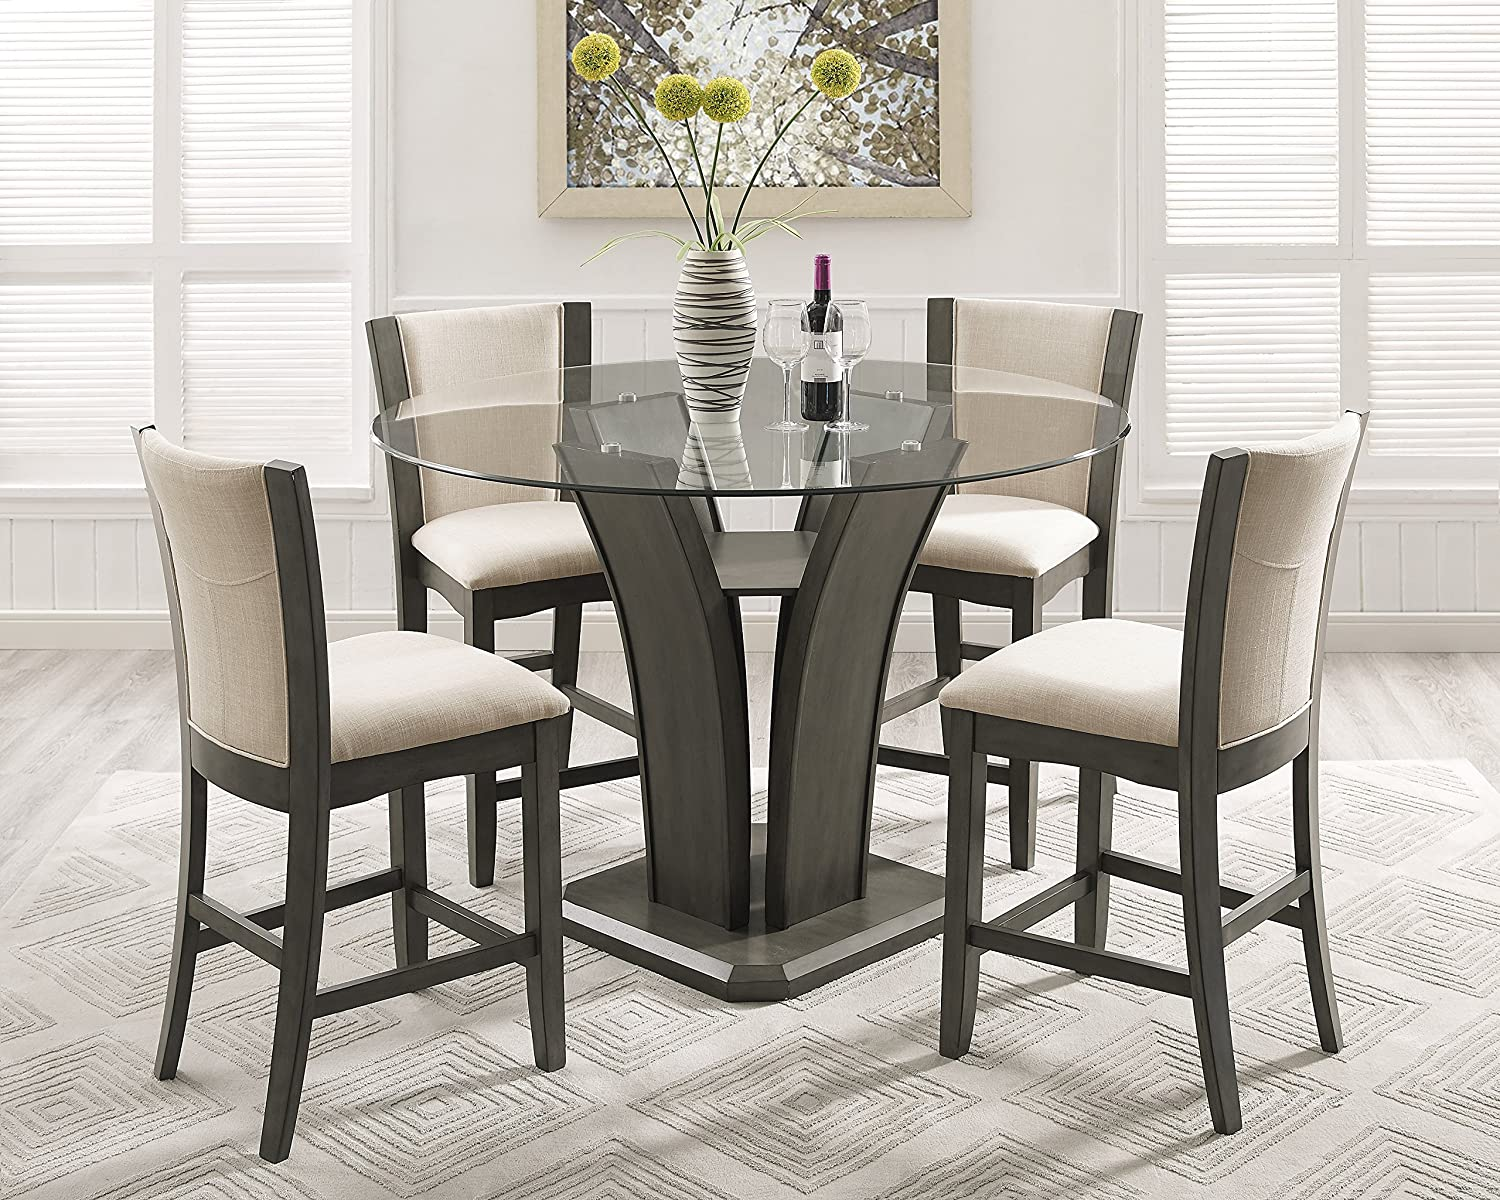 Amazon com roundhill furniture p051gy kecco gray 5 piece round glass top counter height dining set table chair sets